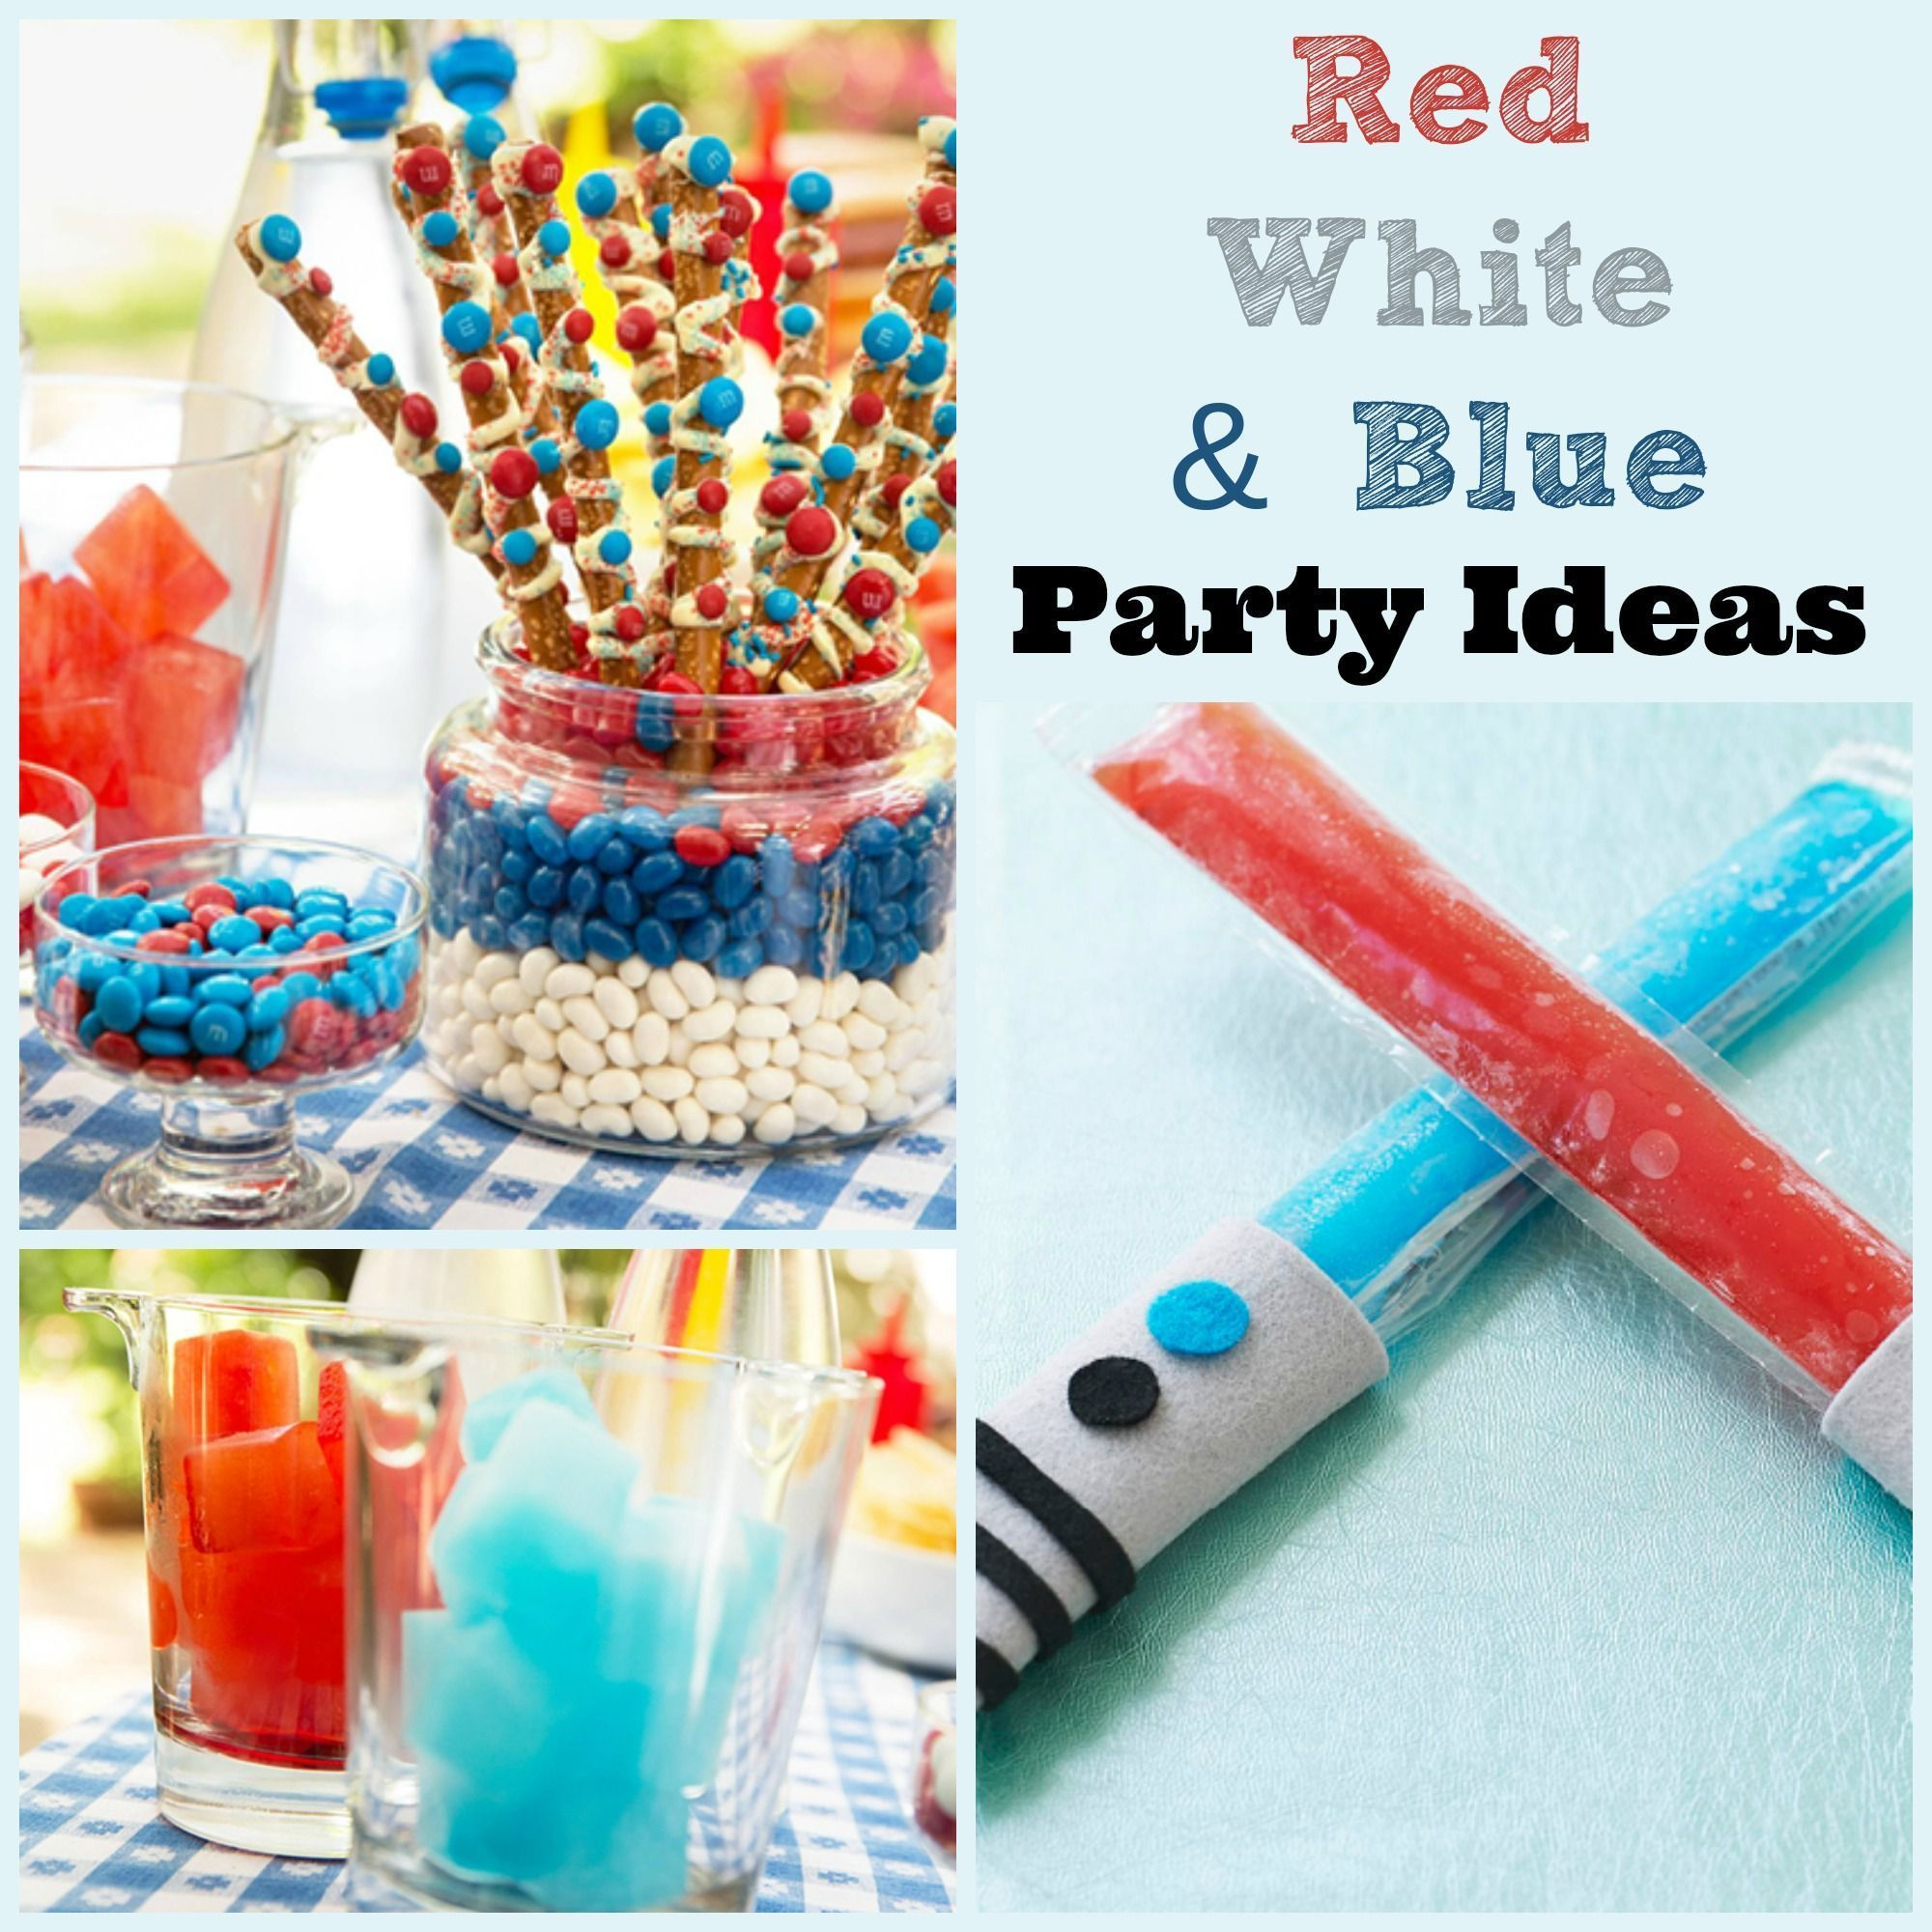 4th of July Party Ideas: Red White & Blue Food & Drink Recipes #labordayfoodideas Red, white and blue party ideas for 4th of July, Memorial Day and Labor Day. #summer #party #food #drinks #4thofJuly #labordayfoodideas 4th of July Party Ideas: Red White & Blue Food & Drink Recipes #labordayfoodideas Red, white and blue party ideas for 4th of July, Memorial Day and Labor Day. #summer #party #food #drinks #4thofJuly #labordayfoodideas 4th of July Party Ideas: Red White & Blue Food & Drink Recipes # #labordayfoodideas